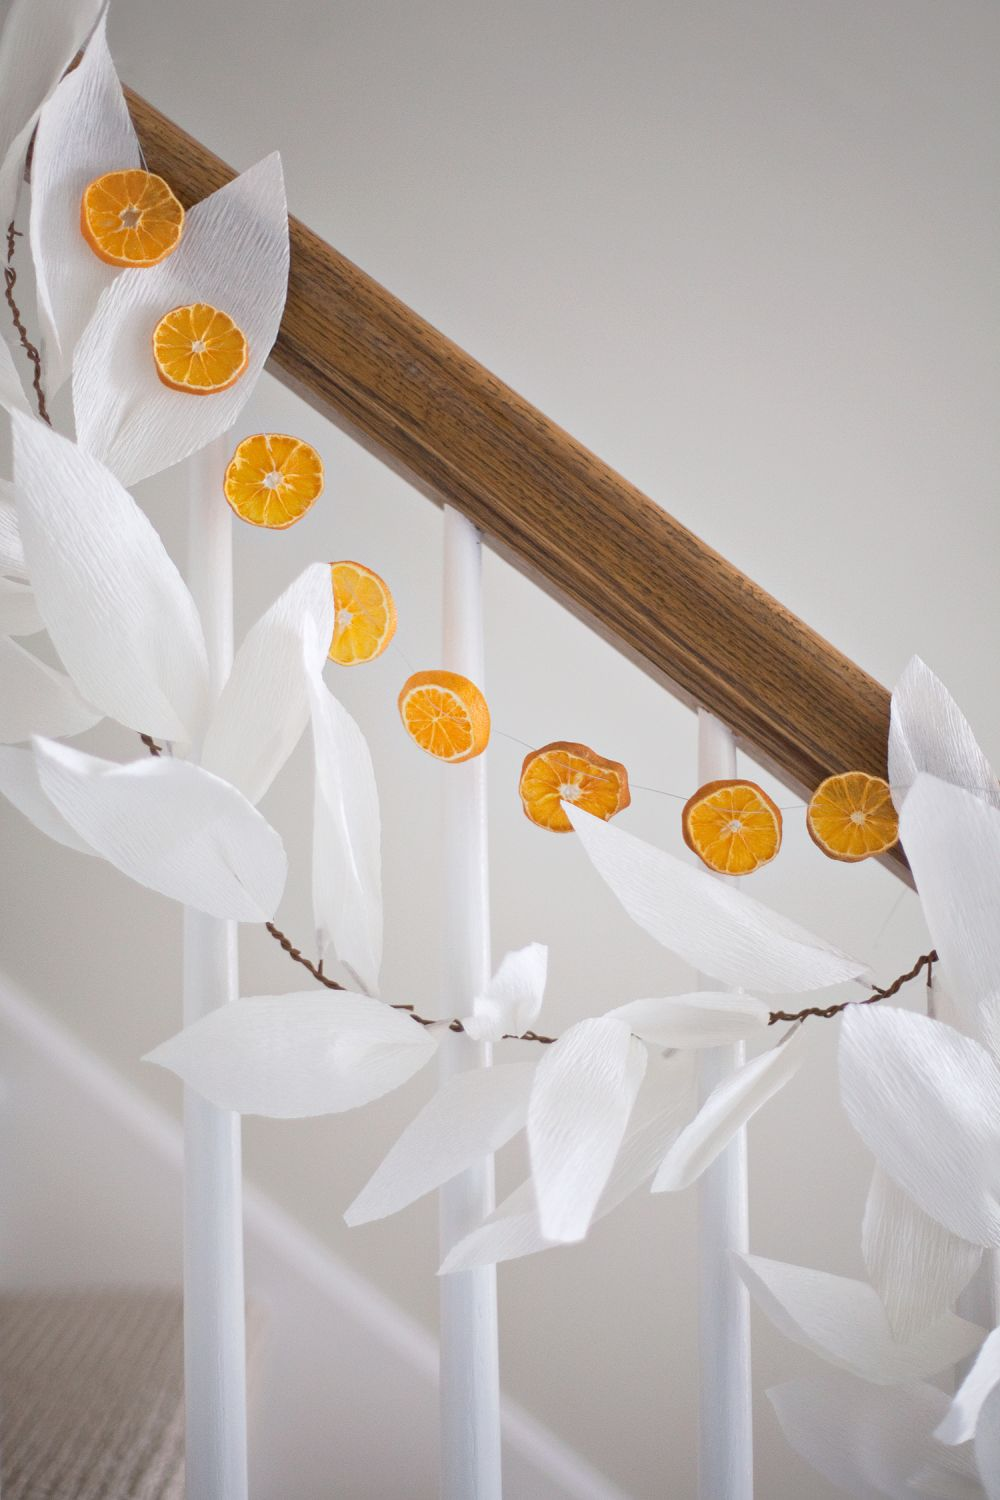 1571084282 65 beautiful leaf crafts just in time for autumn - Beautiful Leaf Crafts Just In Time For Autumn